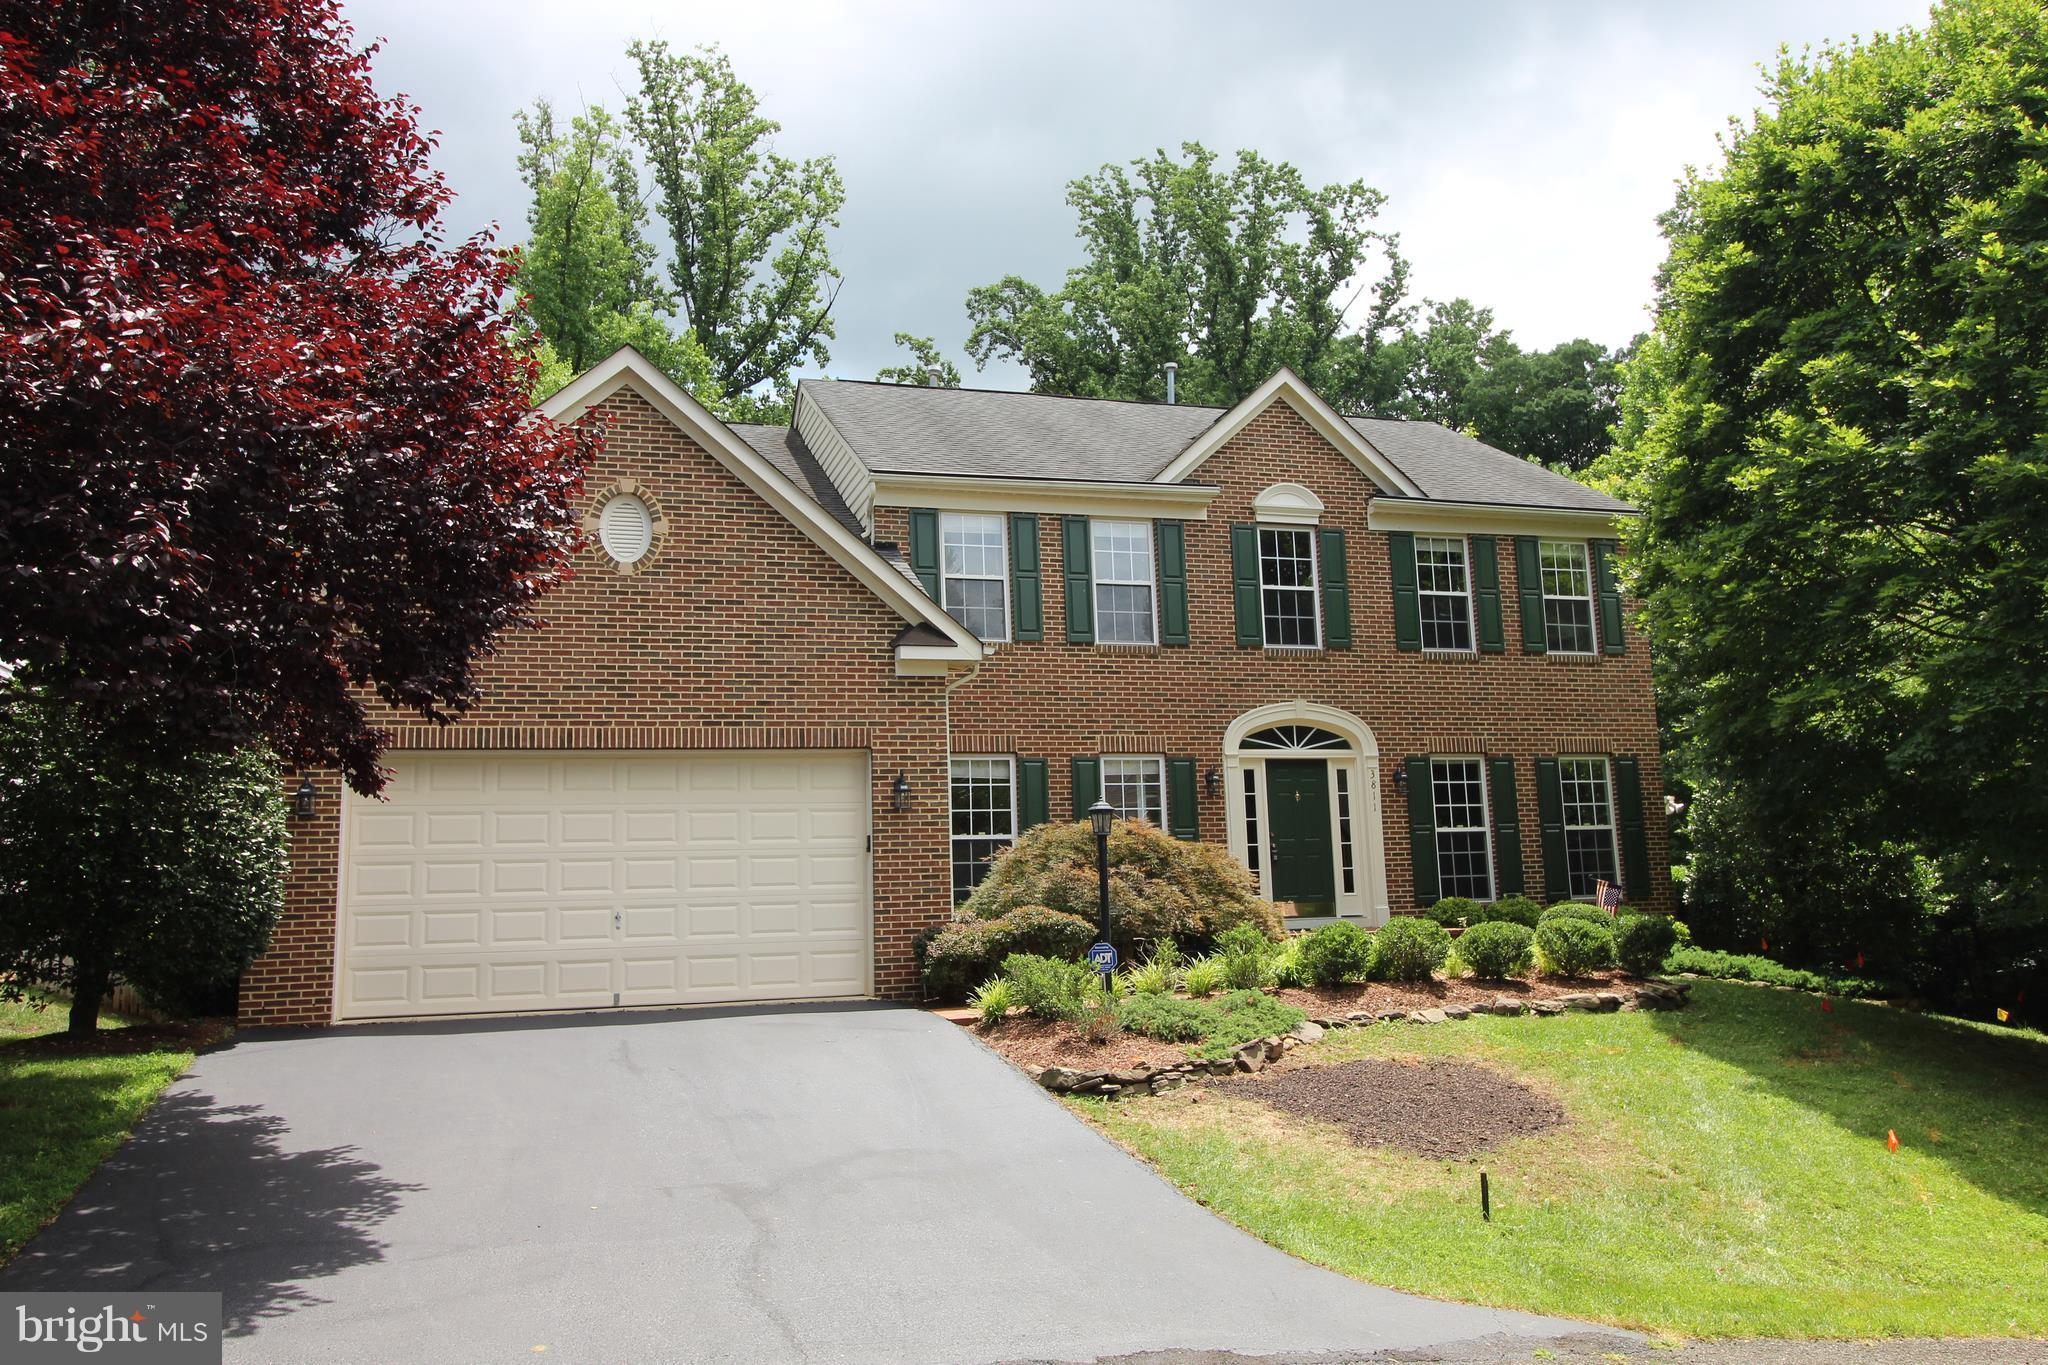 Pristine, Expansive & PRICED BELOW recent appraisal!  Features 5 Bed/3.5 Baths, 1/3+ acre, oversize garage, hardwoods, gourmet kitchen, breakfast room bump out & spacious family room with stone FP.  Luxurious MBR w/2 walk in closets, sitting room & spa bath.  The walk out lower level offers FBA, BR, rec room, game room & storage.  Quiet cul-de-sac location.  The VALUE is here.  Where will YOU be?